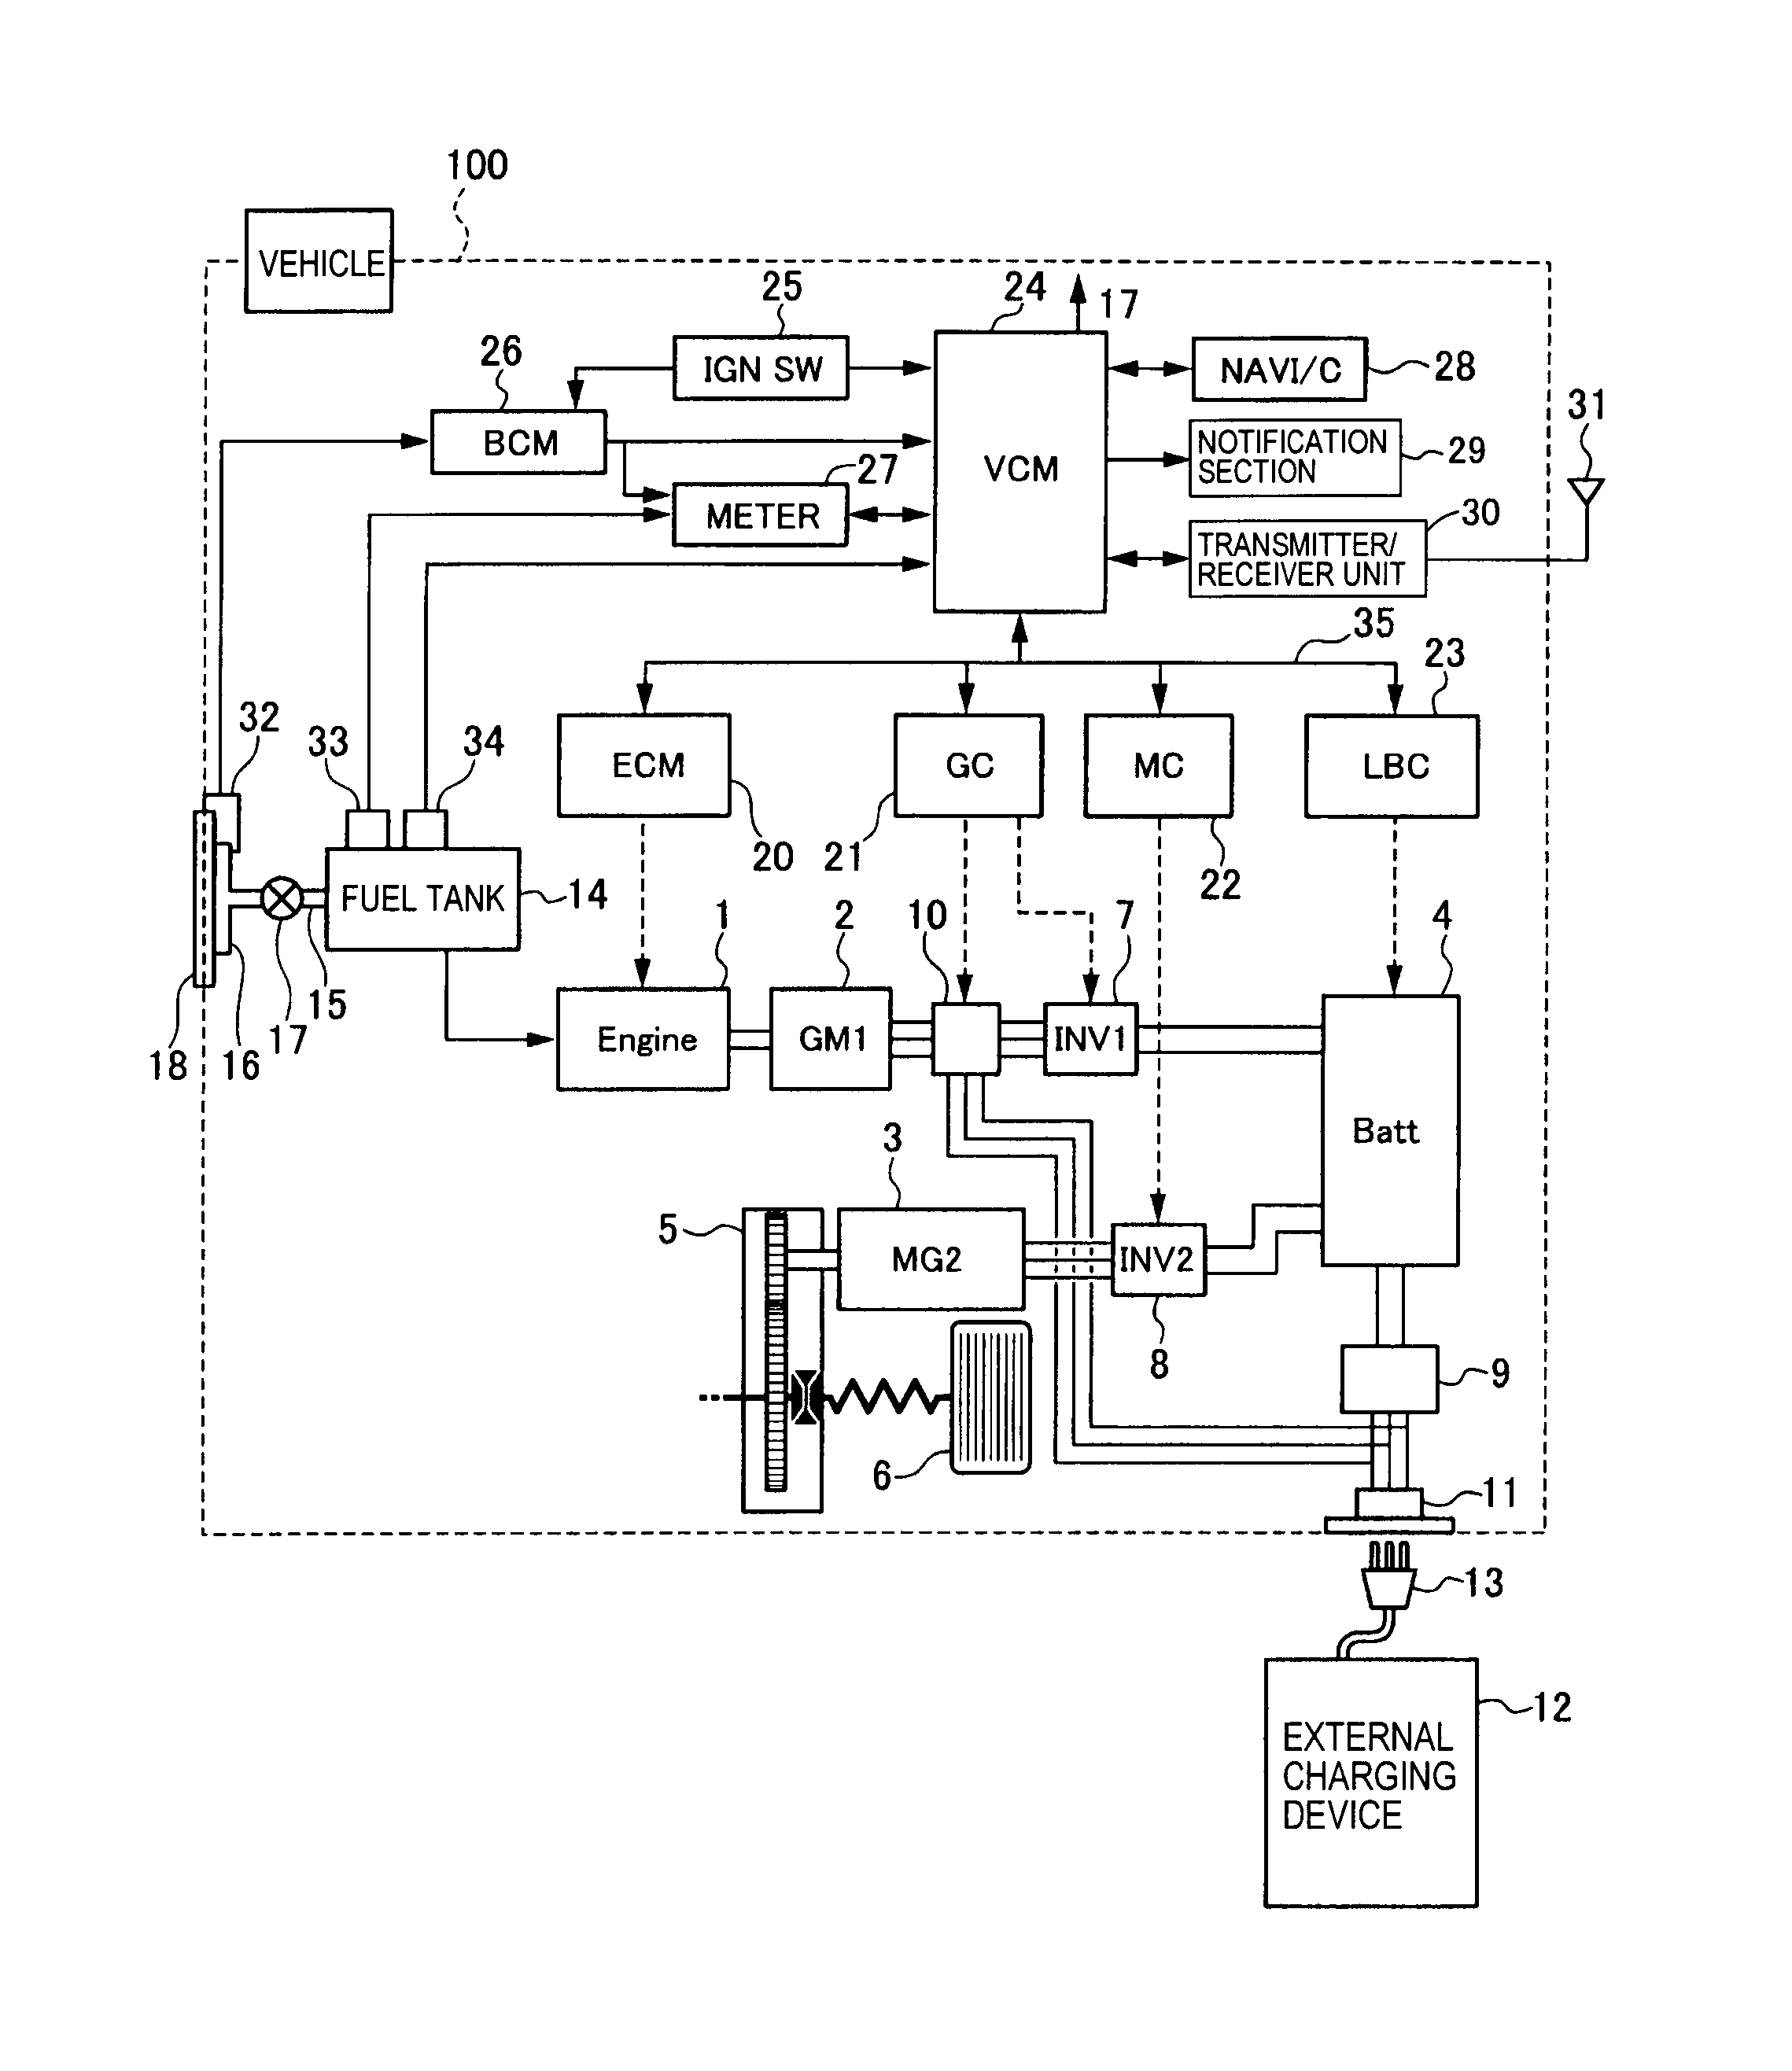 6-prong-lawn-mower-starter-solenoid-wiring-diagram-9 Yard Man Solenoid Wiring Diagram on solenoid connector, solenoid installation, solenoid parts, solenoid sensor, winch solenoid diagram, solenoid schematic, solenoid actuator, solenoid operation, solenoid circuit, ford solenoid diagram, starter diagram, solenoid assembly diagram, solenoid relay, solenoid valve, solenoid engine, solenoid coil, solenoid body diagram, solenoid wire, solenoid starter, solenoid switch diagram,